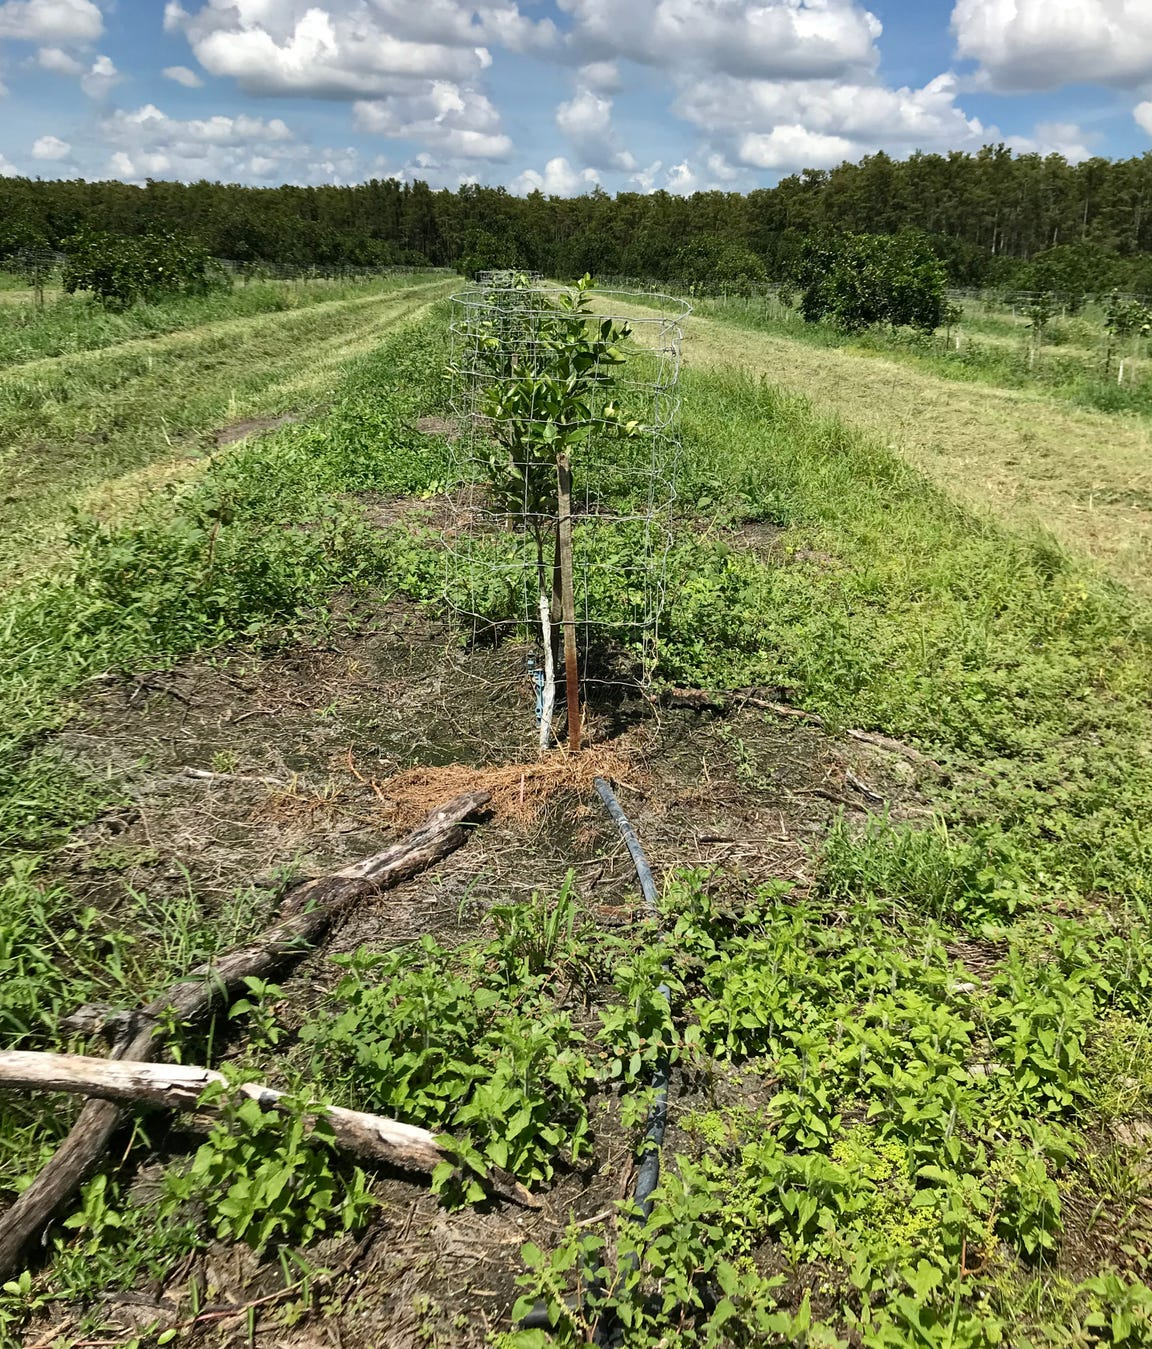 This replacement Valencia tree is about 2 feet tall. It looks tiny when compared to the more mature trees that survived in the Hurricane Irma-damaged Bear Hammock Grove, in Collier County near Corkscrew Swamp Sanctuary.